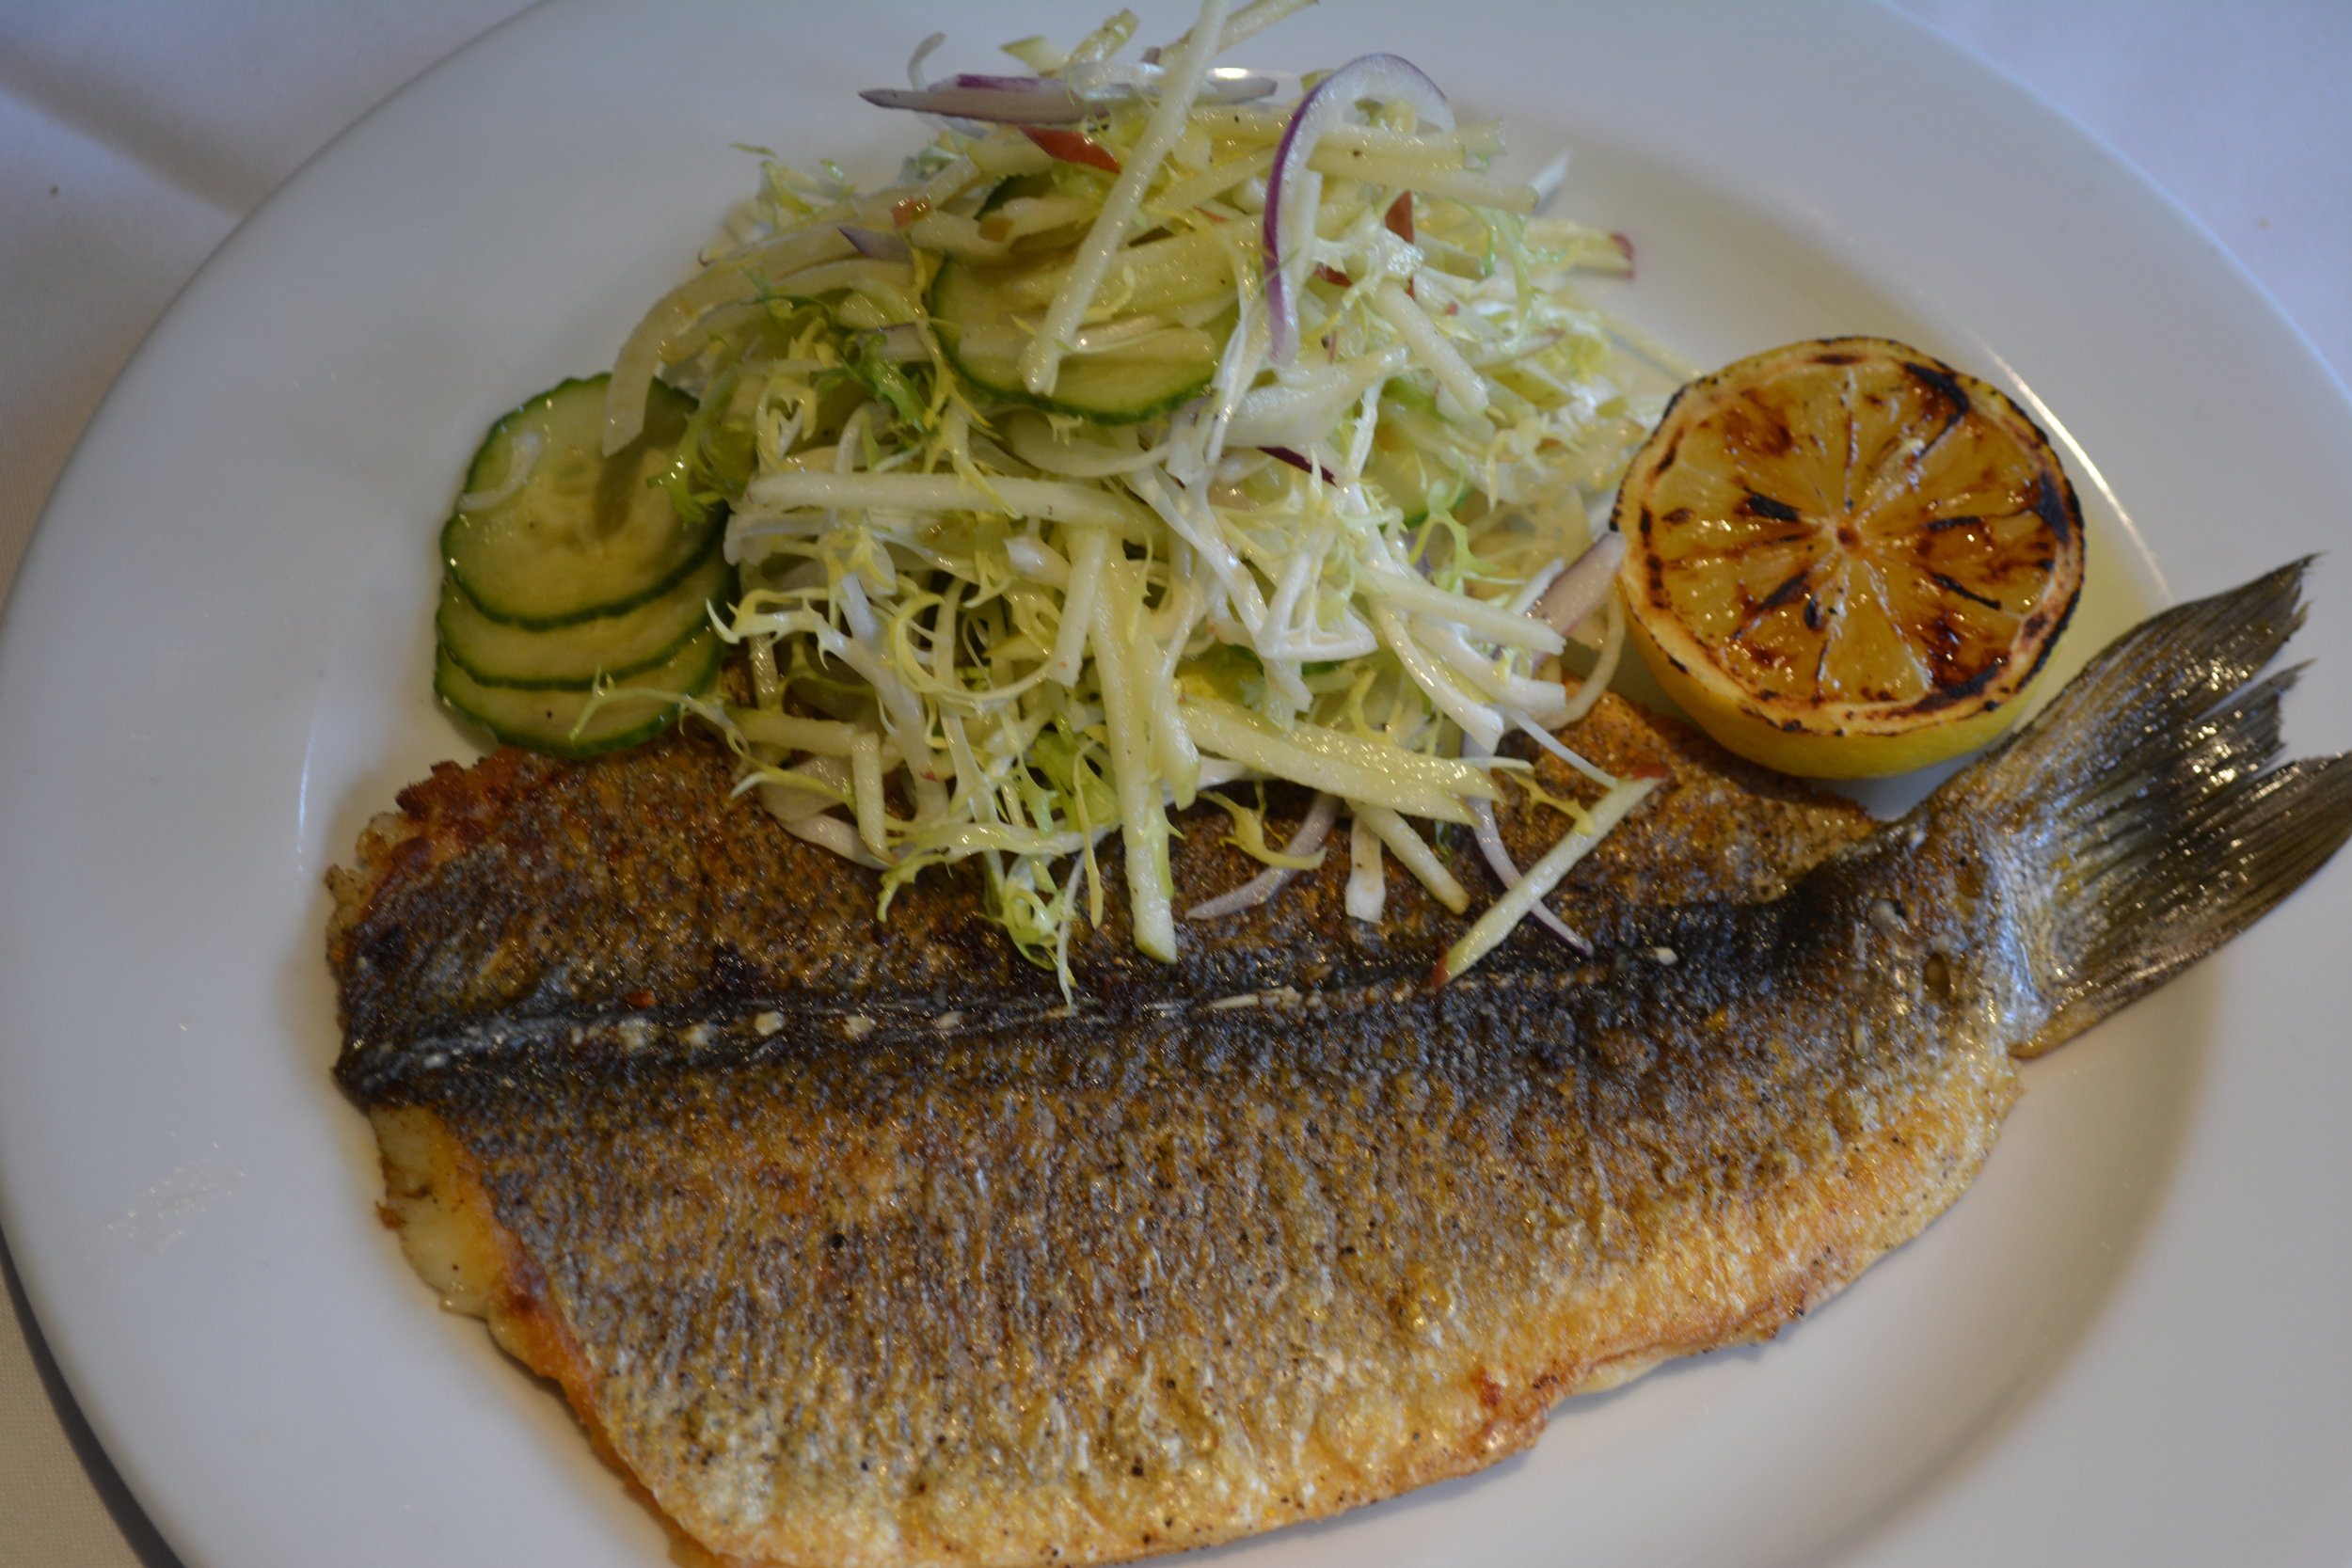 The fried whole Branzino with frisee, fennel and apple salad is a new dish for spring.